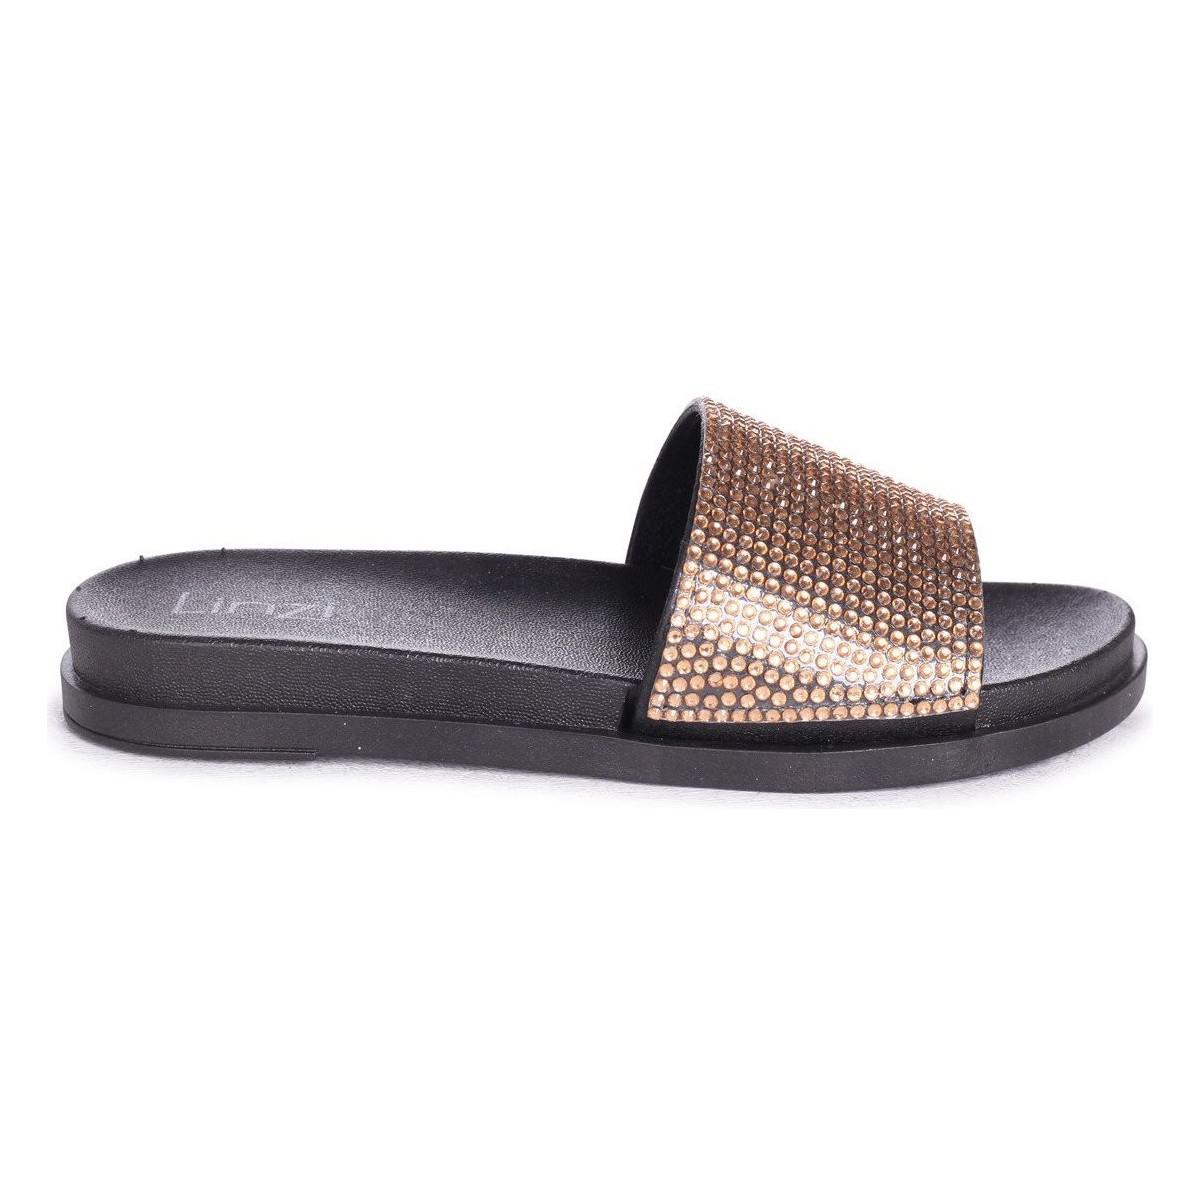 84bc558db84 Linzi Jamie Women s Mules   Casual Shoes In Gold in Metallic - Lyst